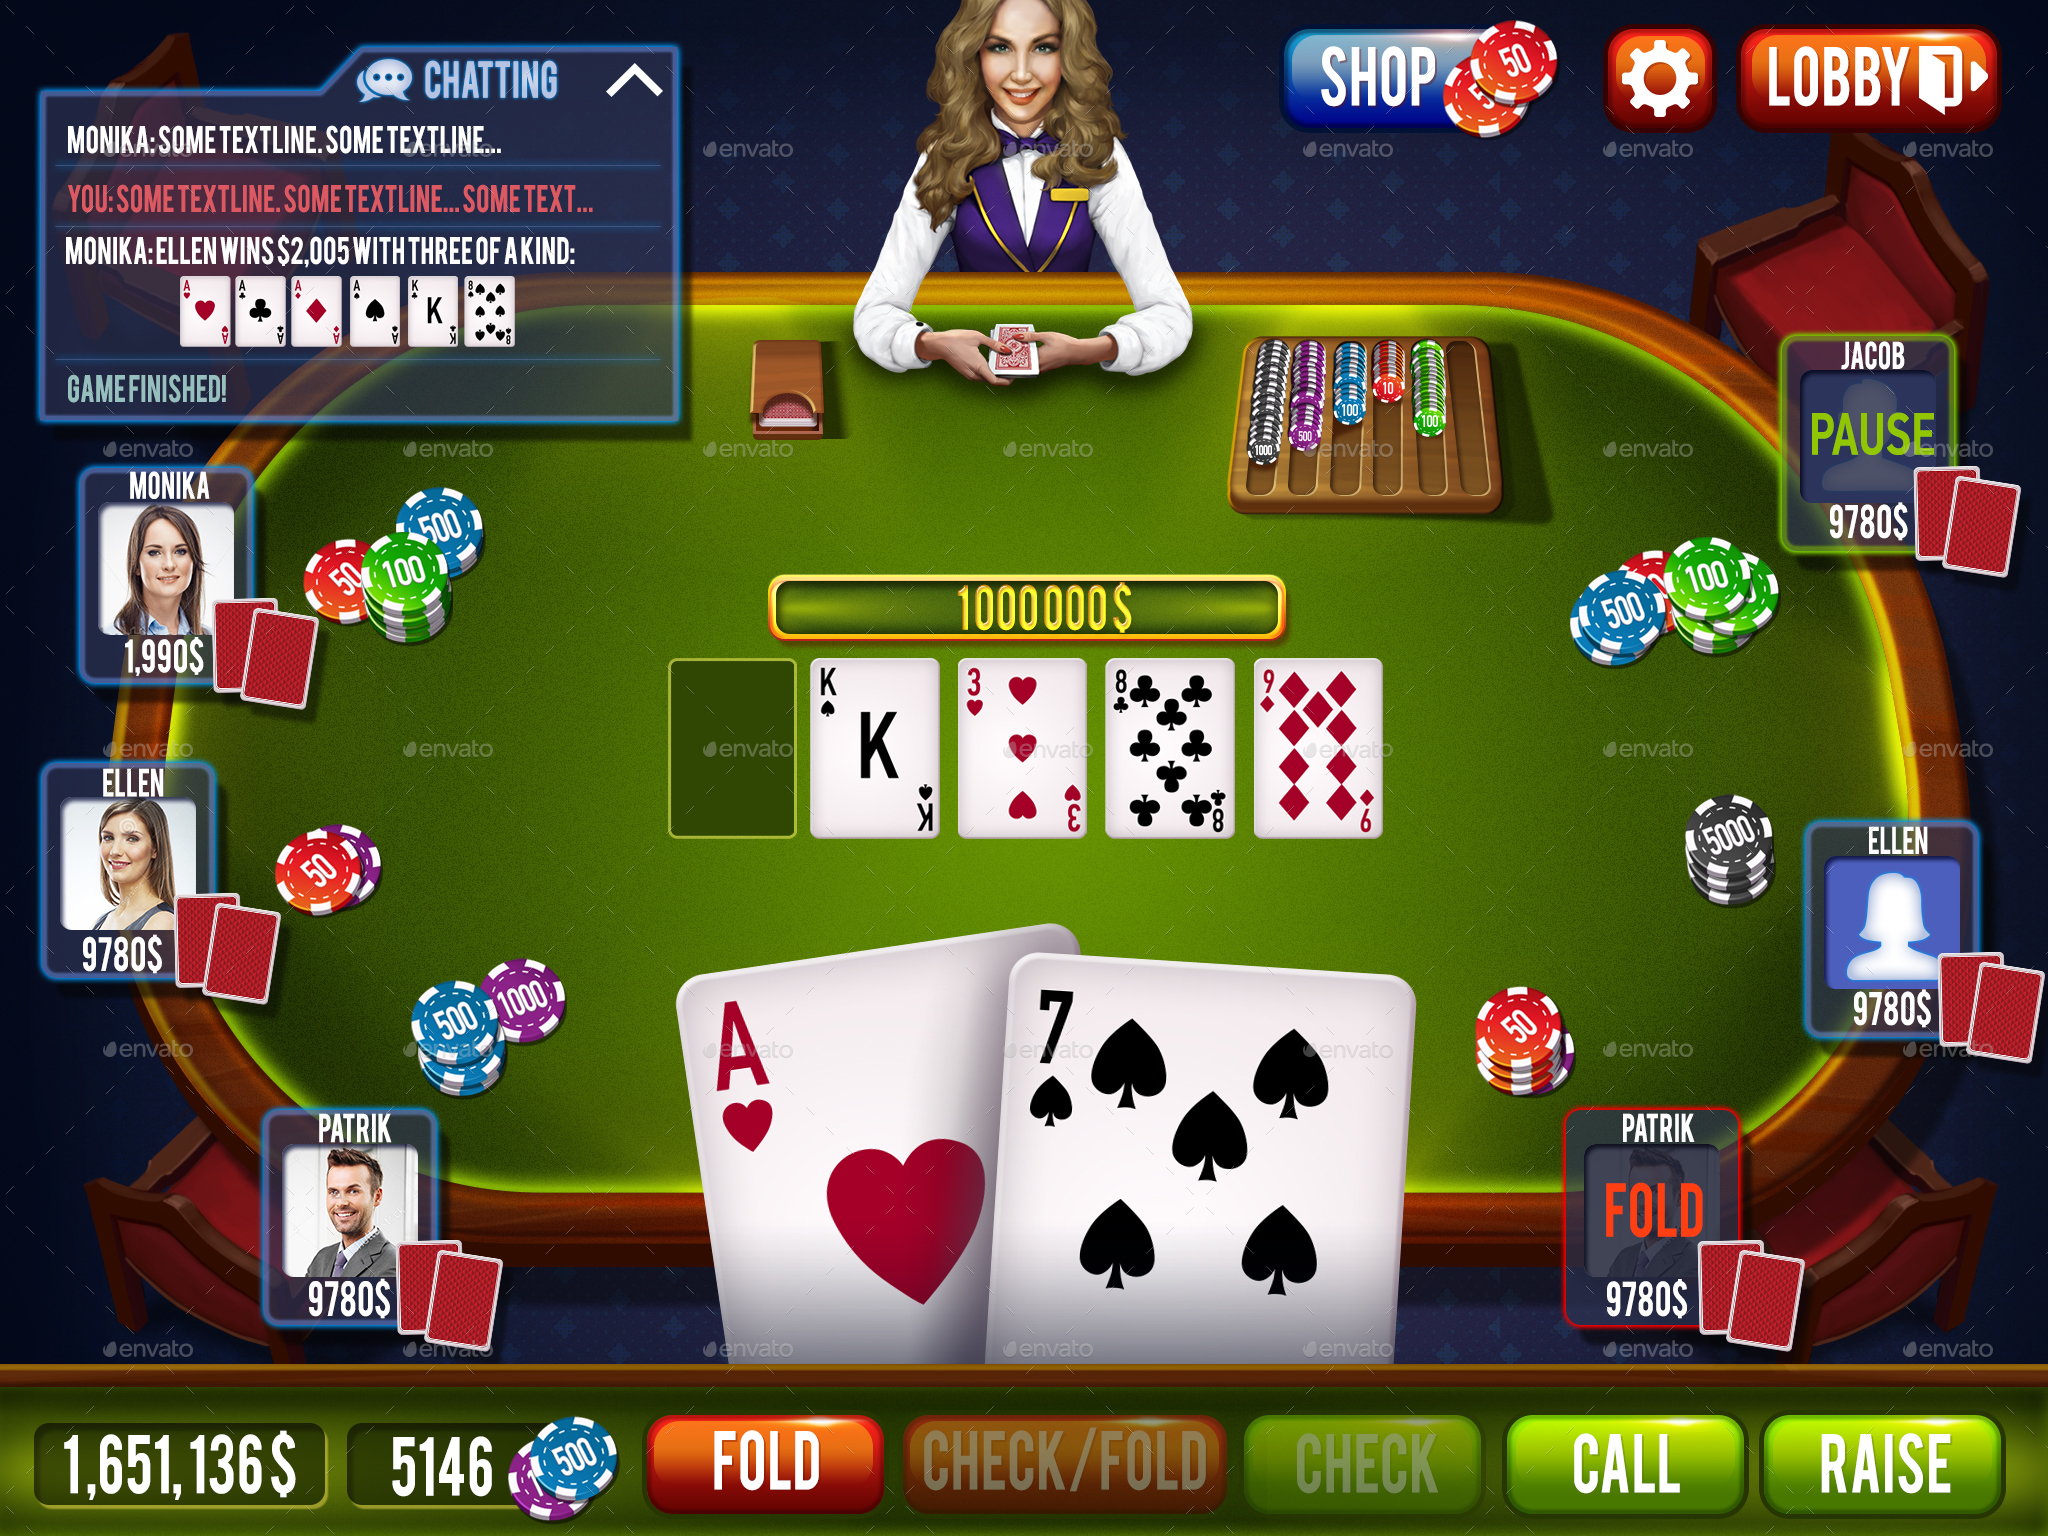 Double deck pitch blackjack rules